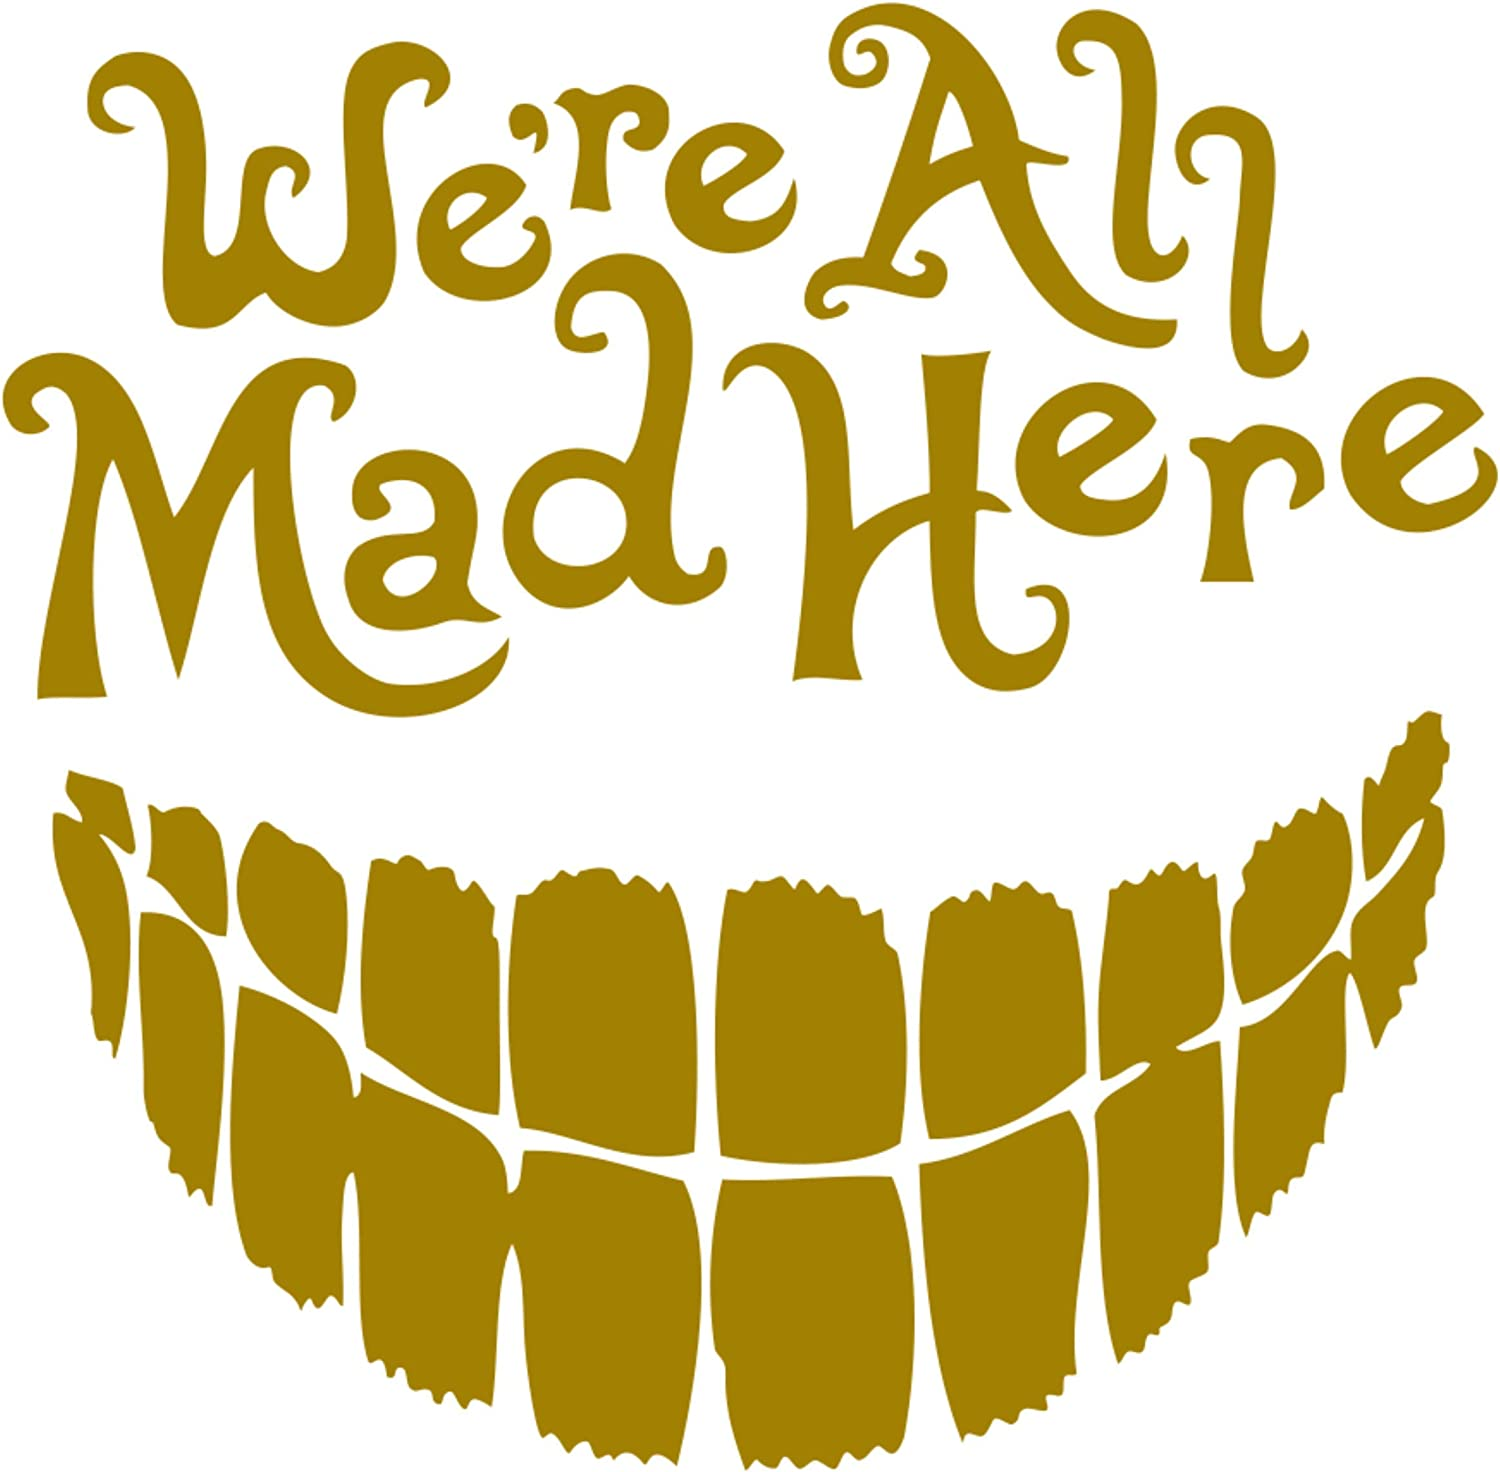 Vinyl car Decal Red, 5.5 Were All Mad Here with a Big Smile Signage Cafe Alice in Wonderland